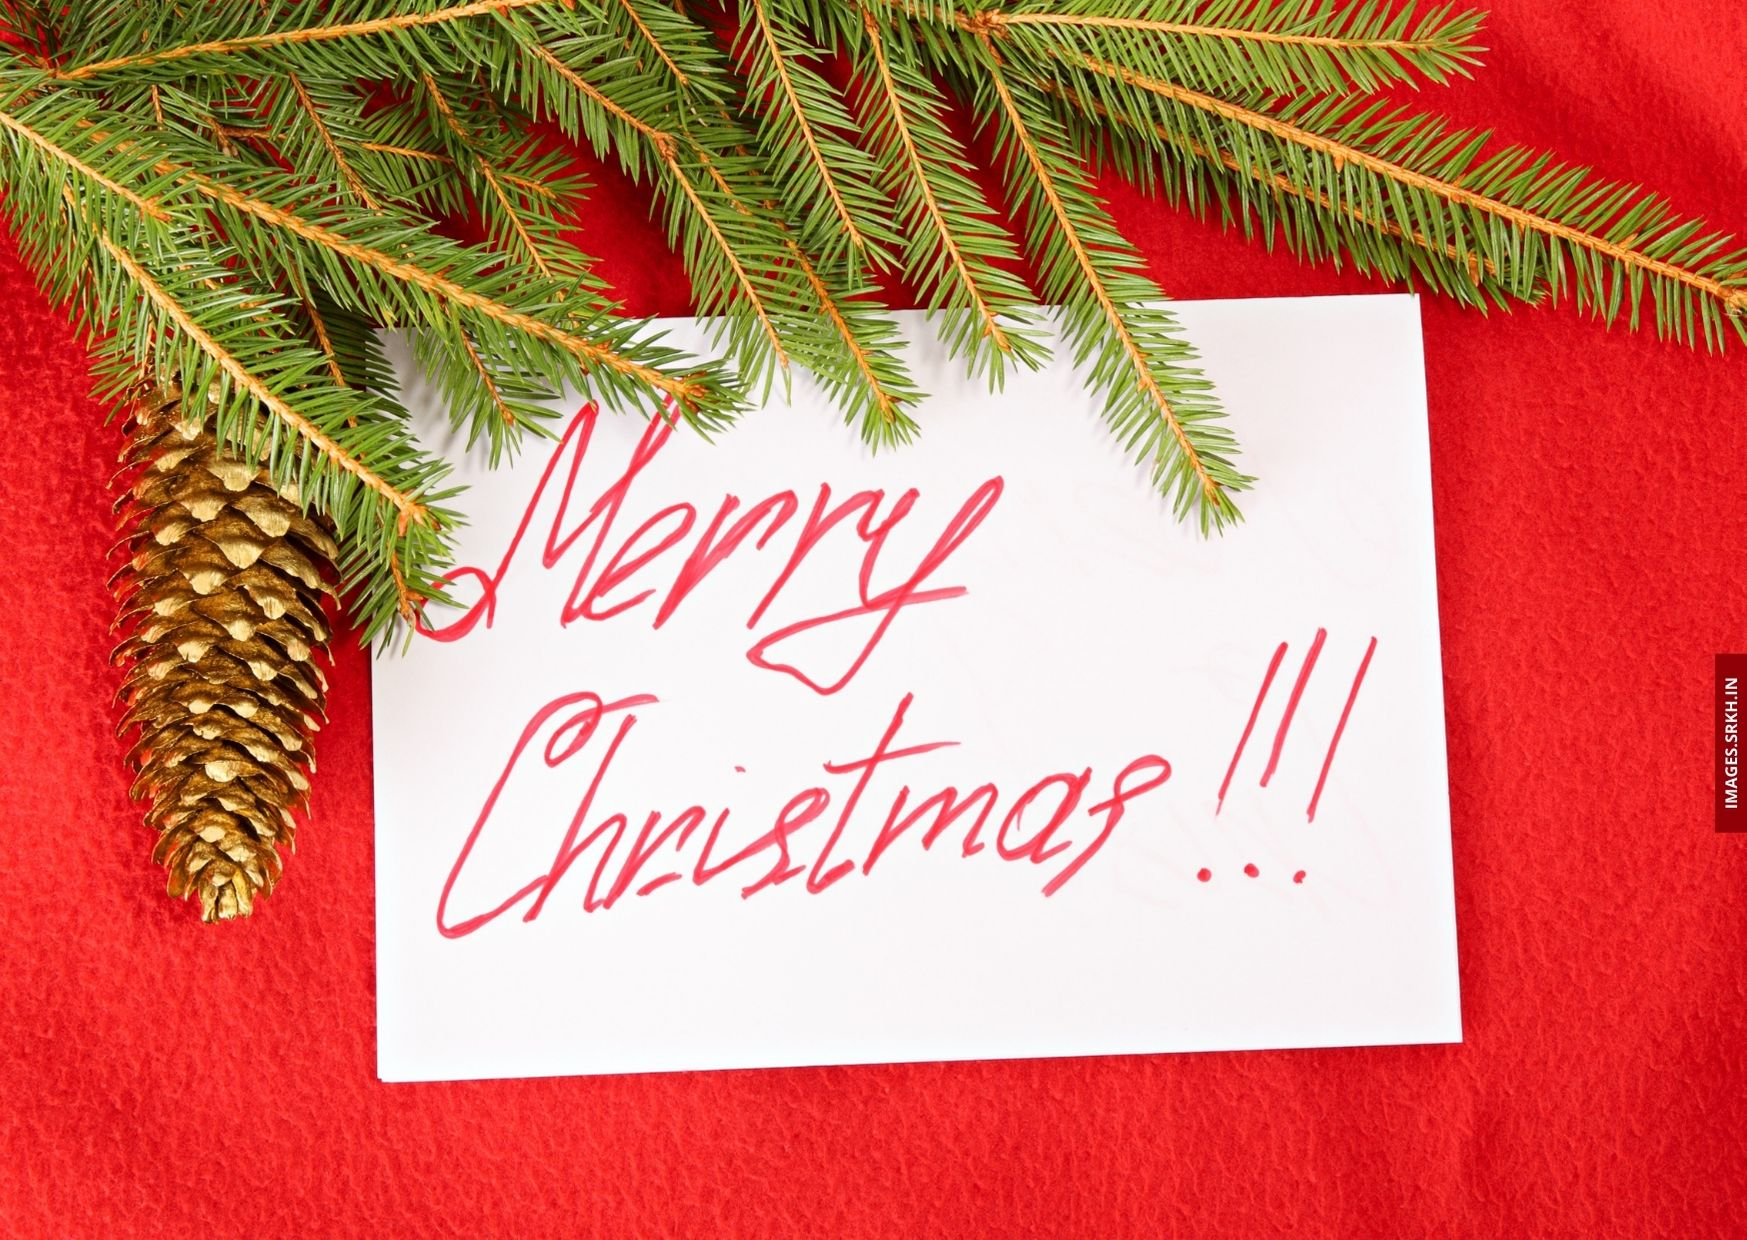 Xmas Cards Images full HD free download.